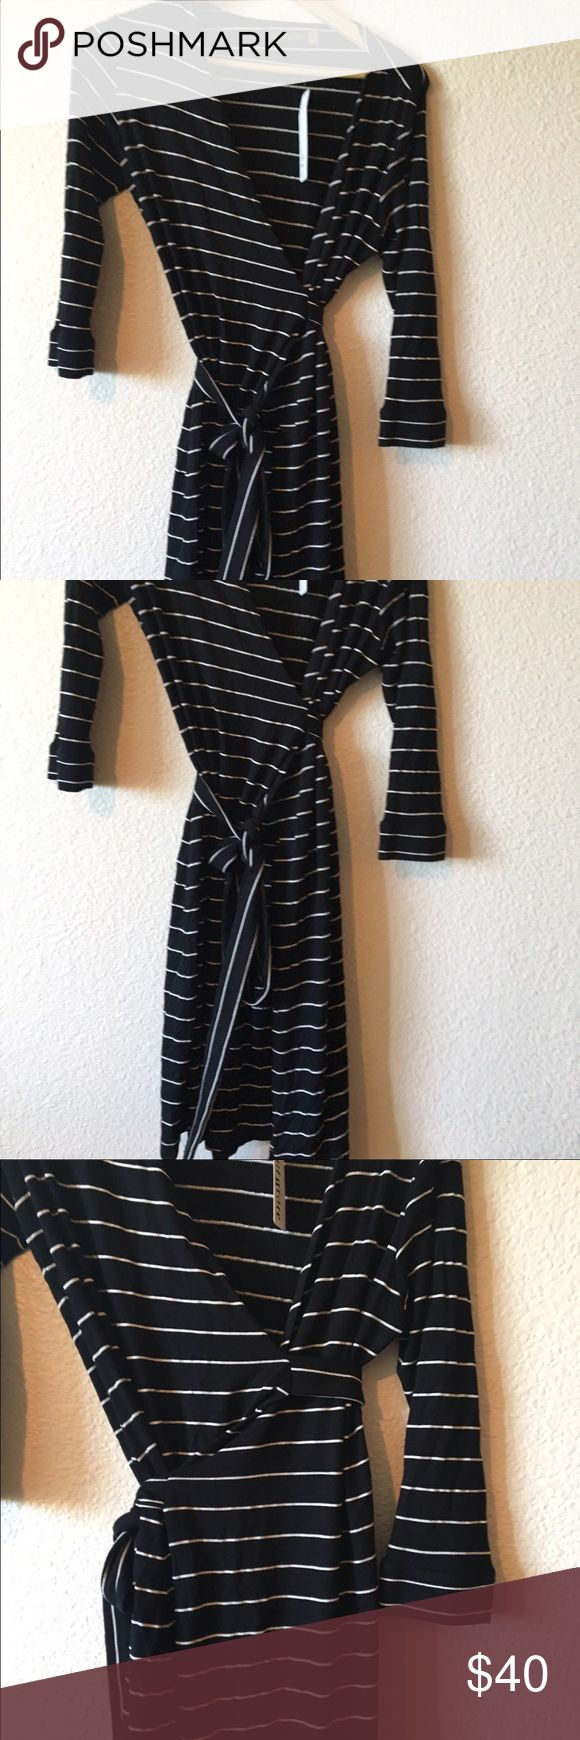 Revolve Black Dress , Saint Grace brand Size M Size m Black and white wrap very lightweight sweater dress new with tags size medium bought from revolve clothing website - saint grace brand size m , hits At knee! Great for graduations , with a sexy flare saint grace Dresses